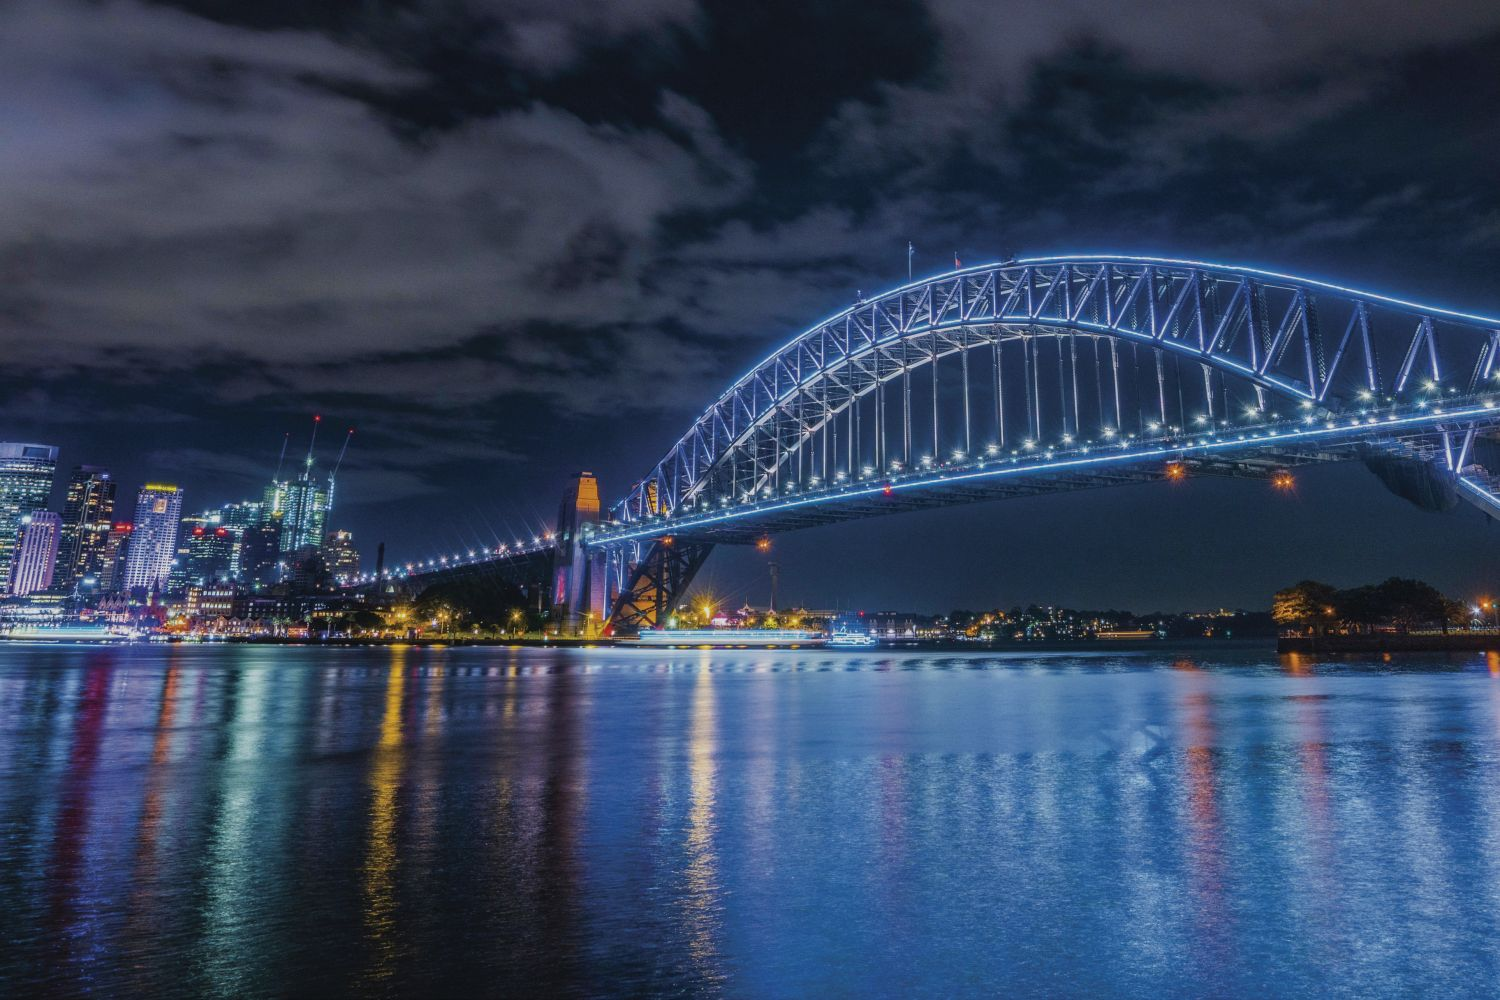 Sydney Harbour Bridge during Vivid Sydney 2016